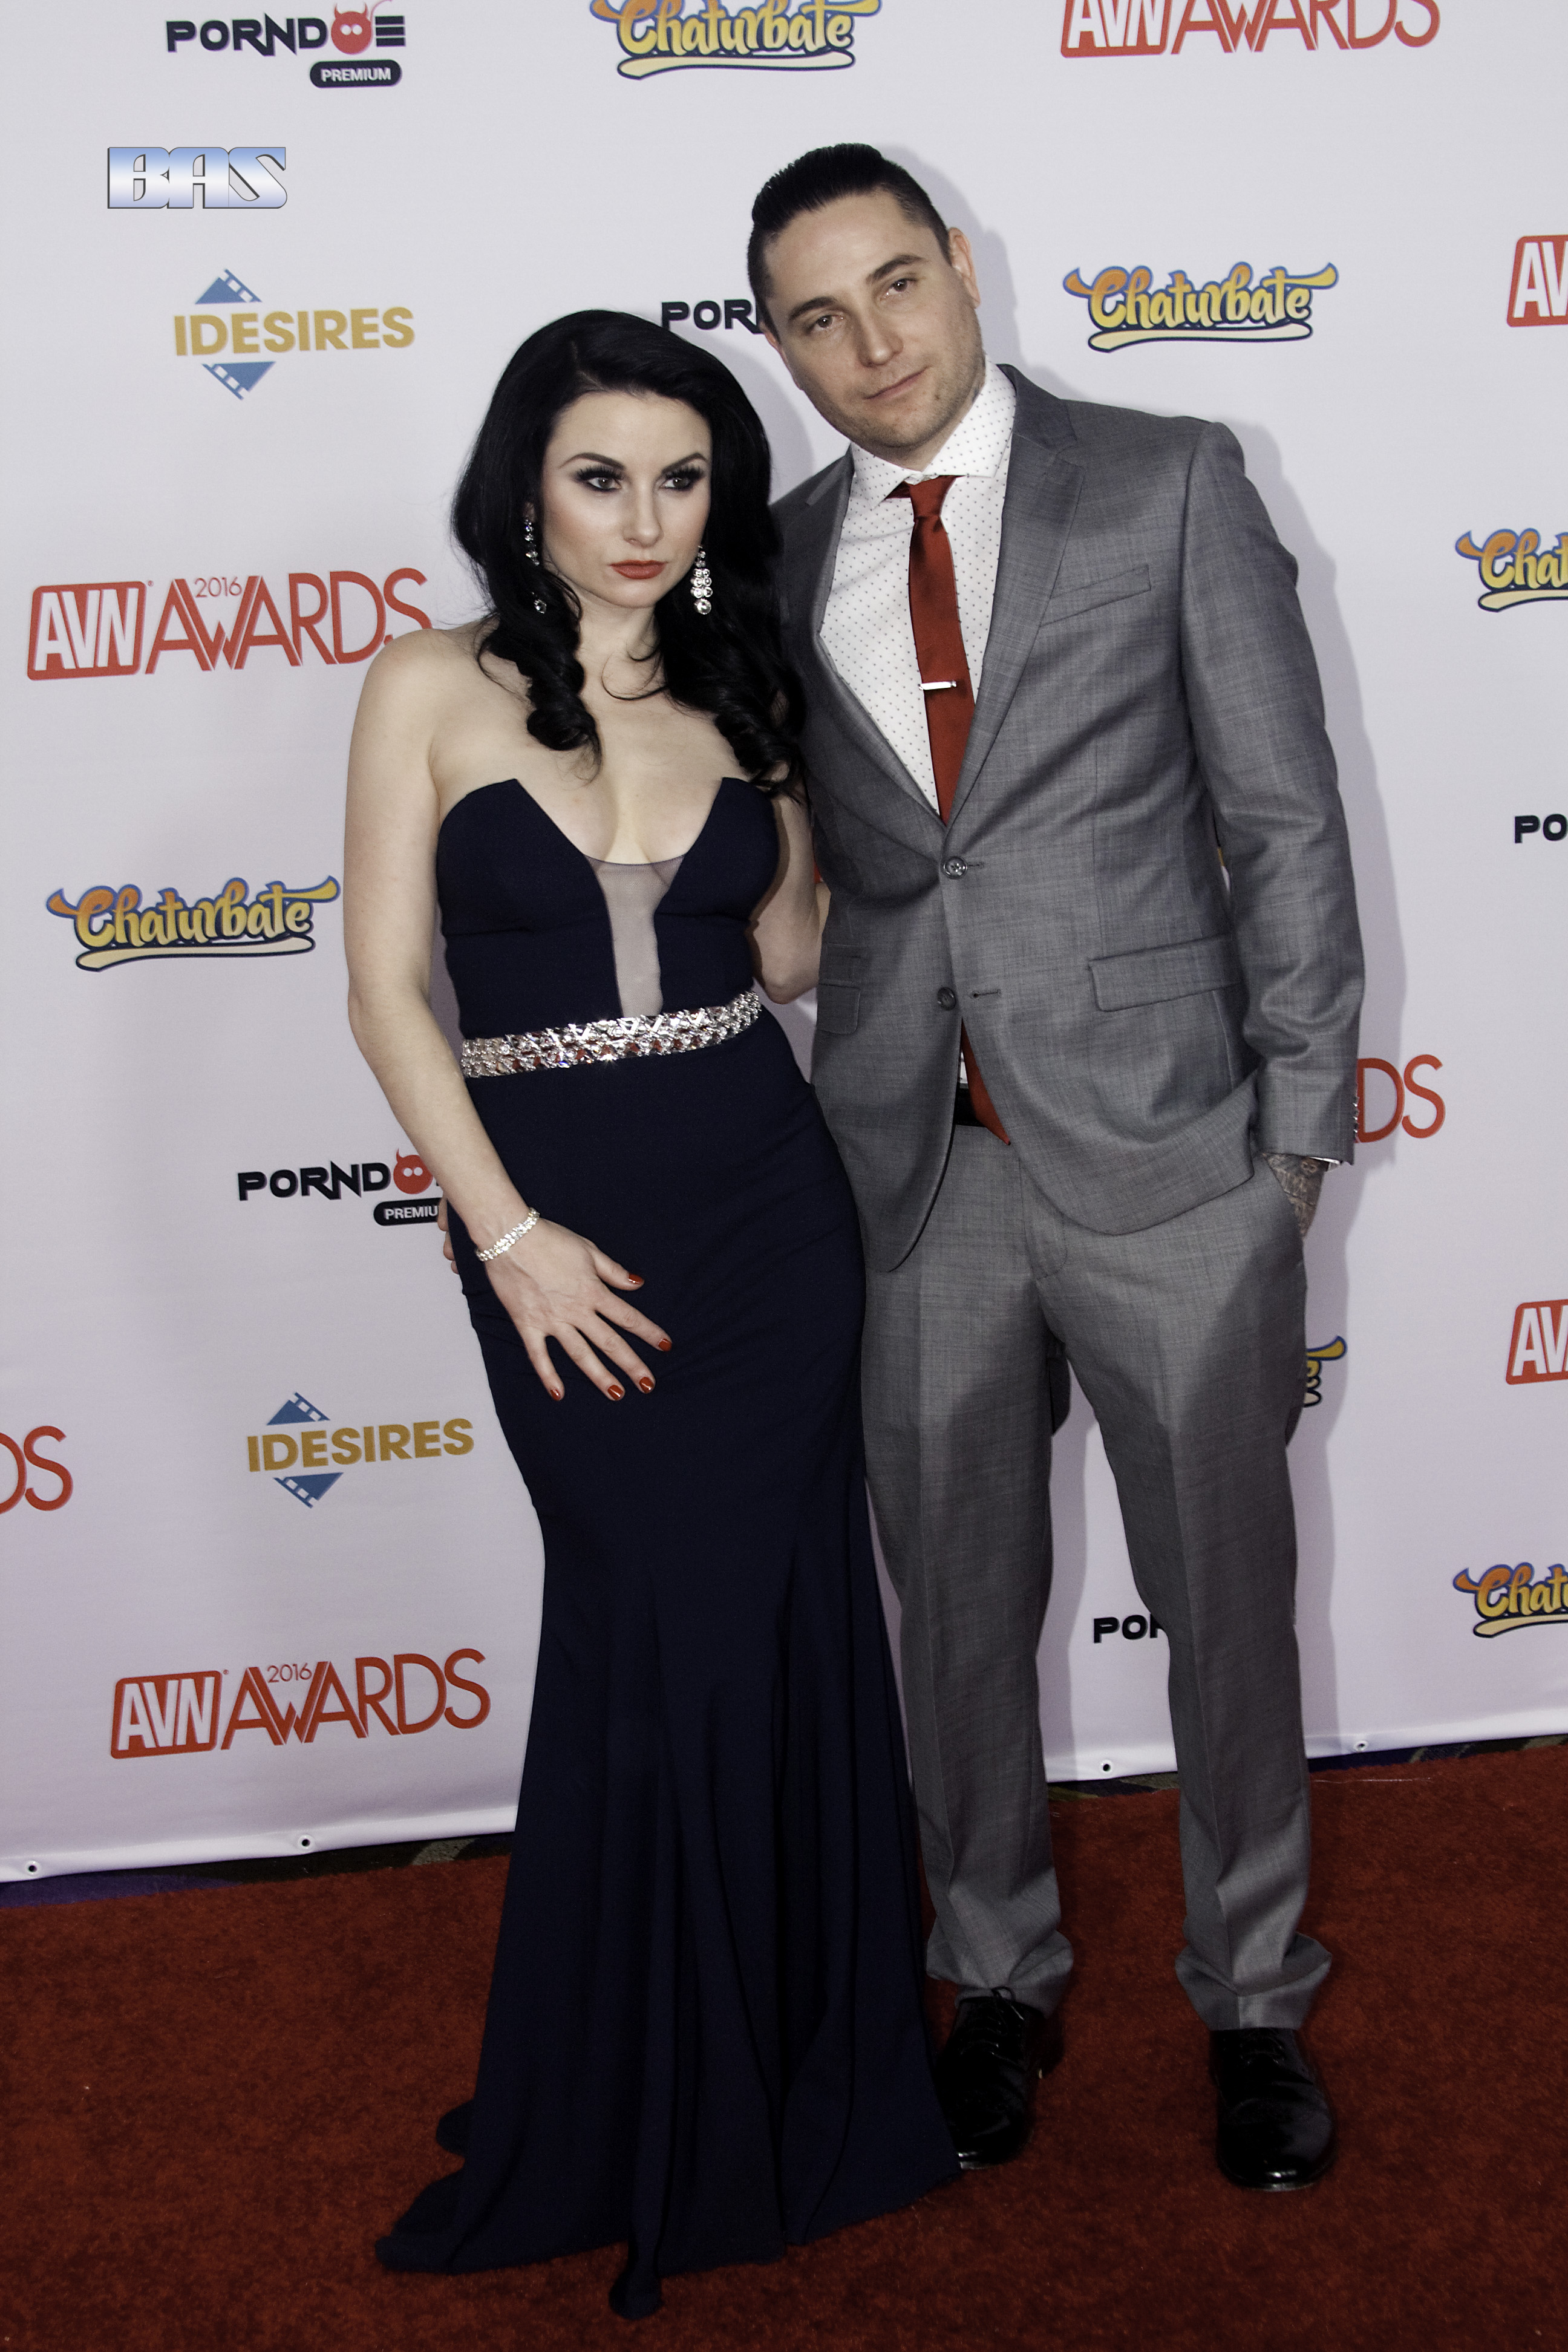 Veruca_James_accompanied_by_Damon_James_at_AVN_Awards_2016_(26398687300)